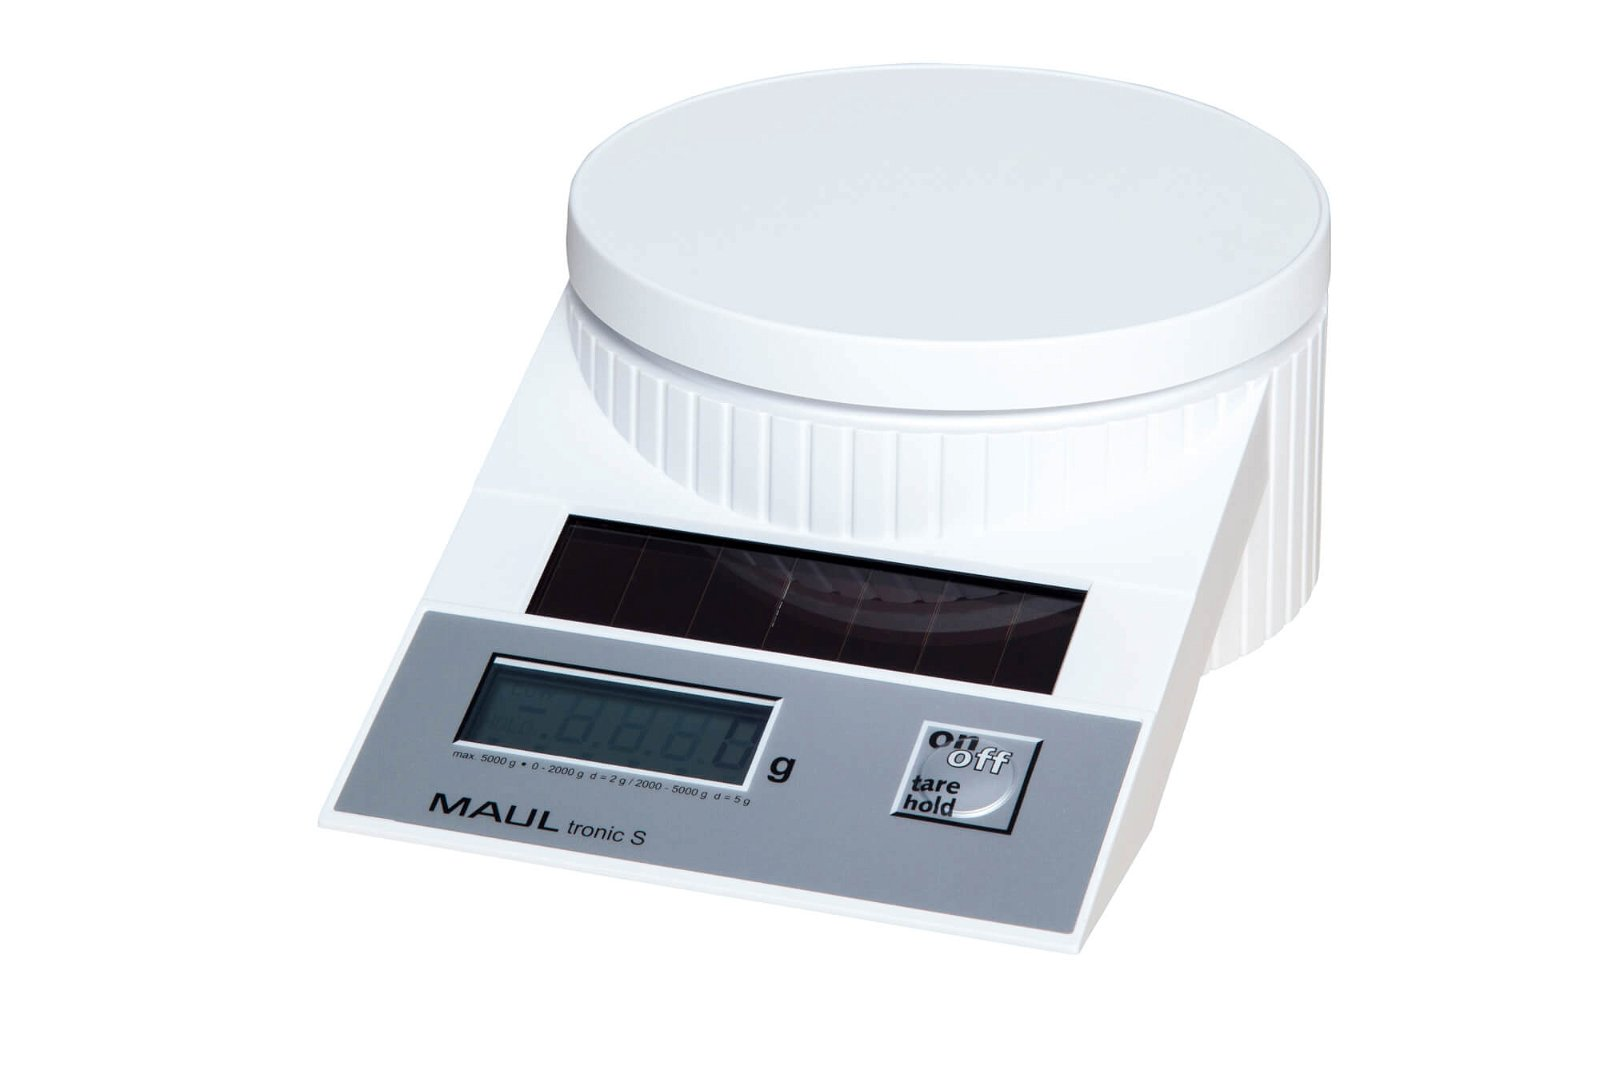 Solar-Briefwaage MAULtronic S, 5000 g, weiß